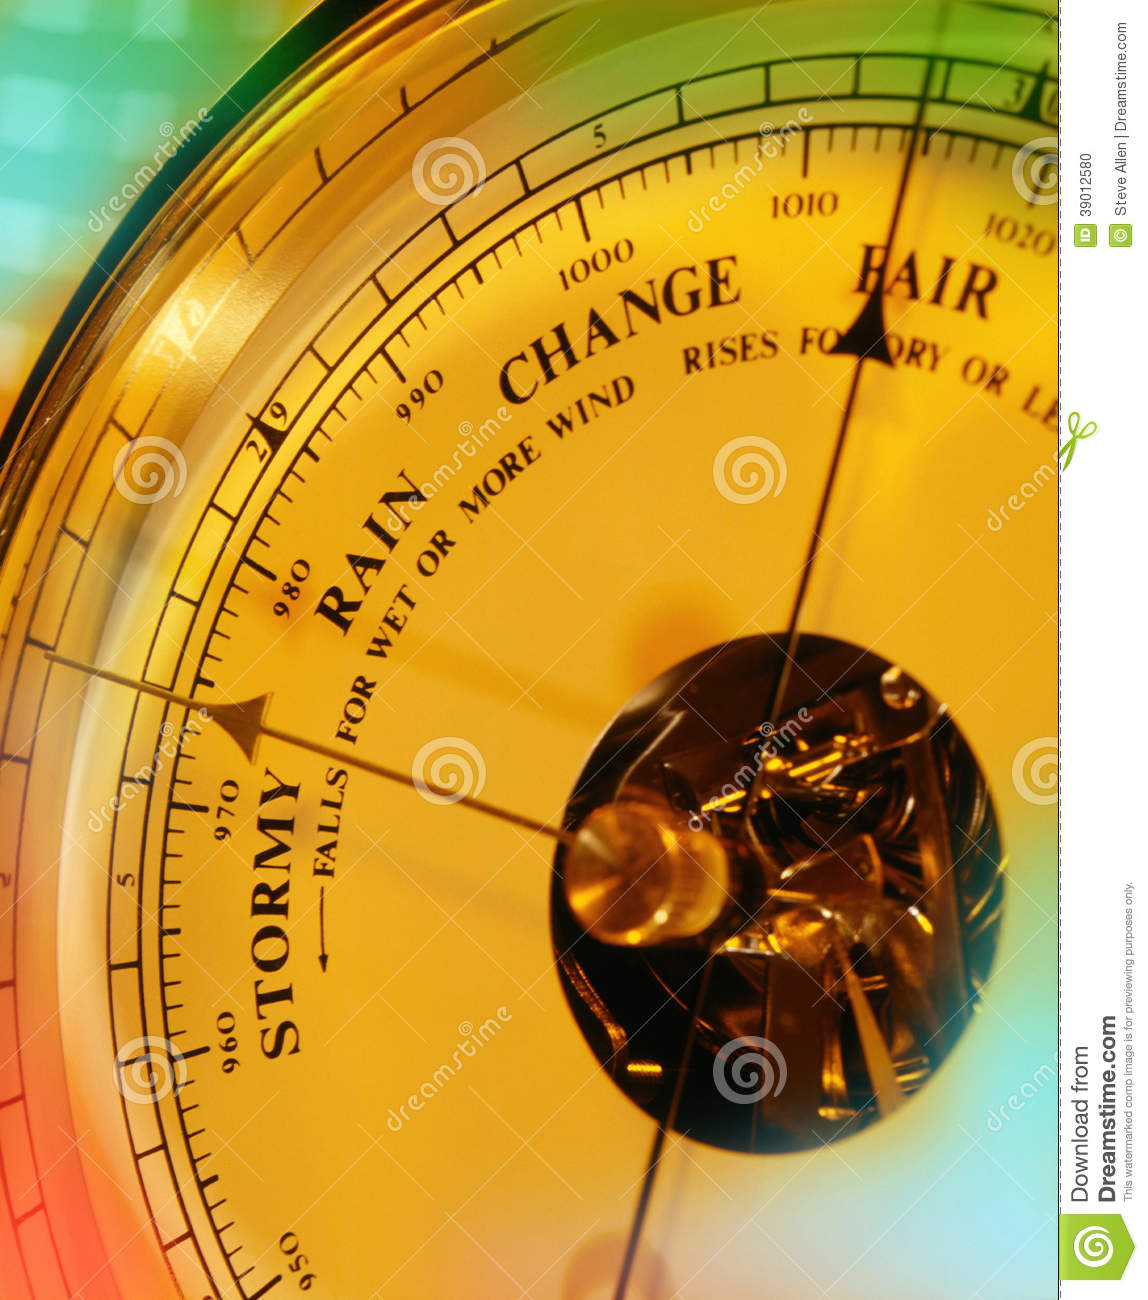 Pressure Measuring Instruments : Aneroid barometer weather forecast stock photo image